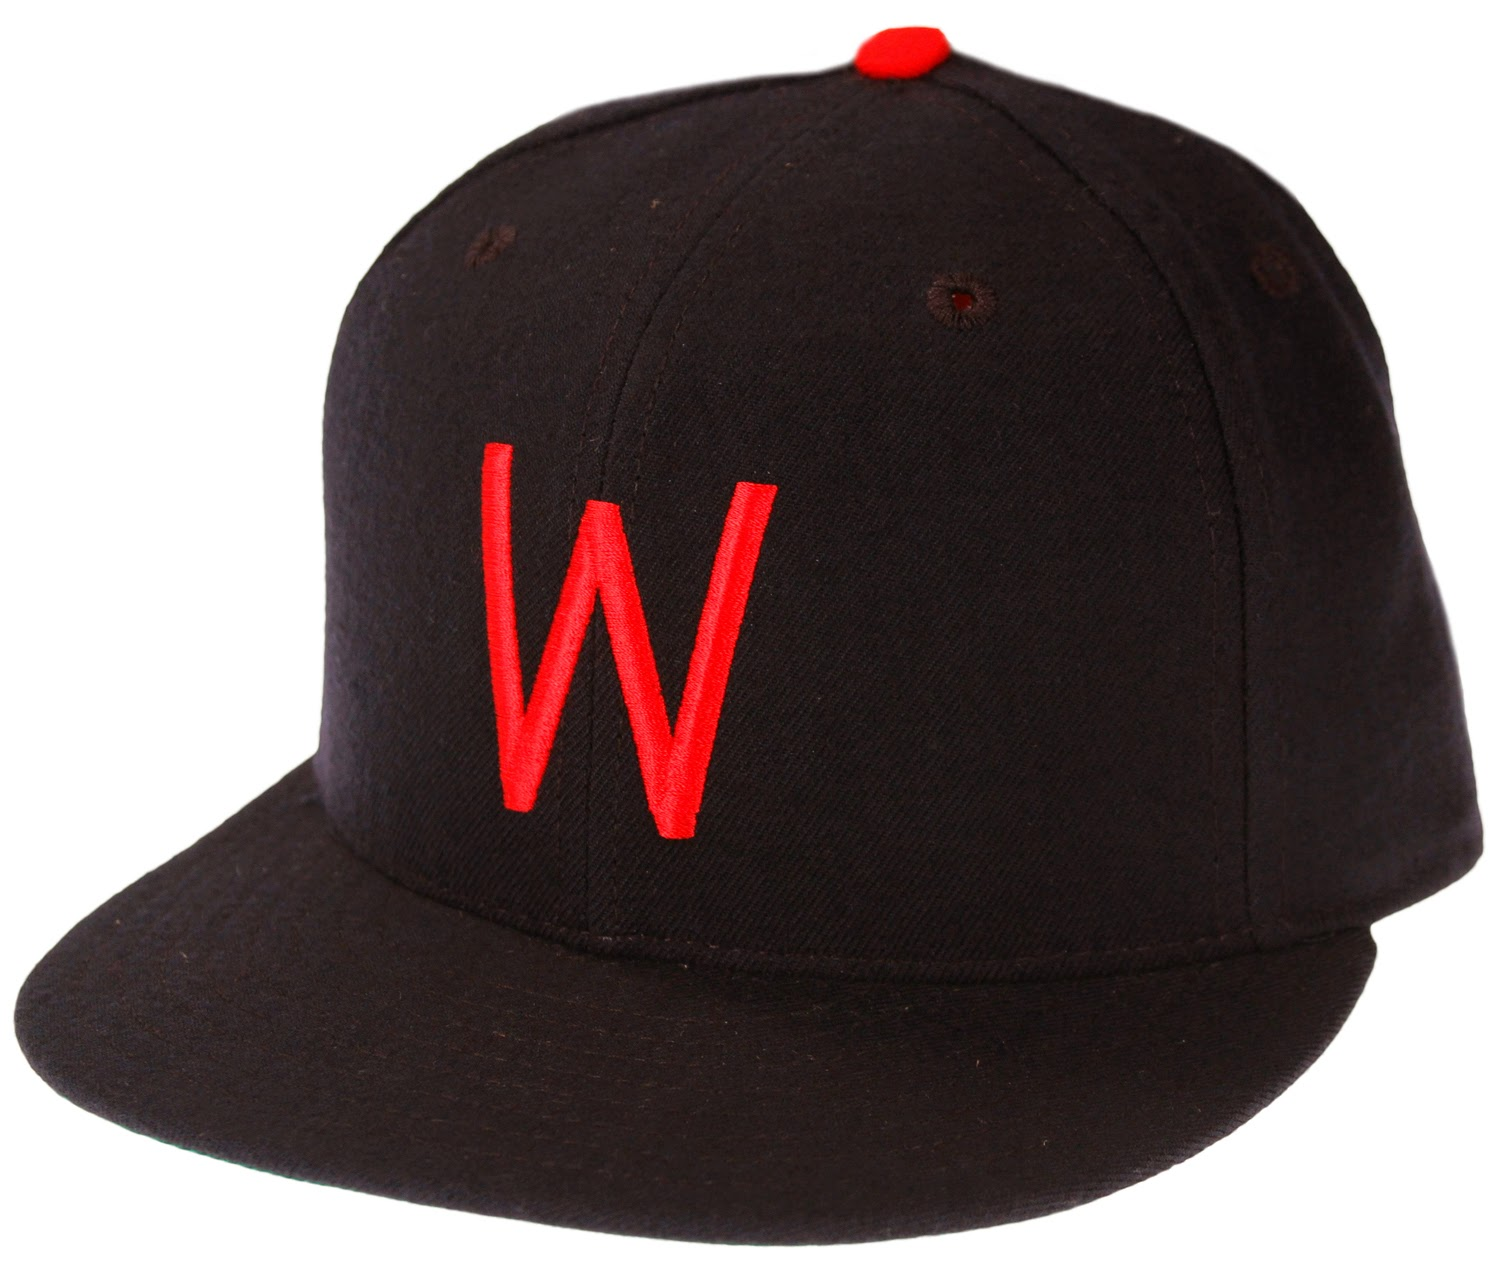 new era 59 50 milb minor league baseball washington